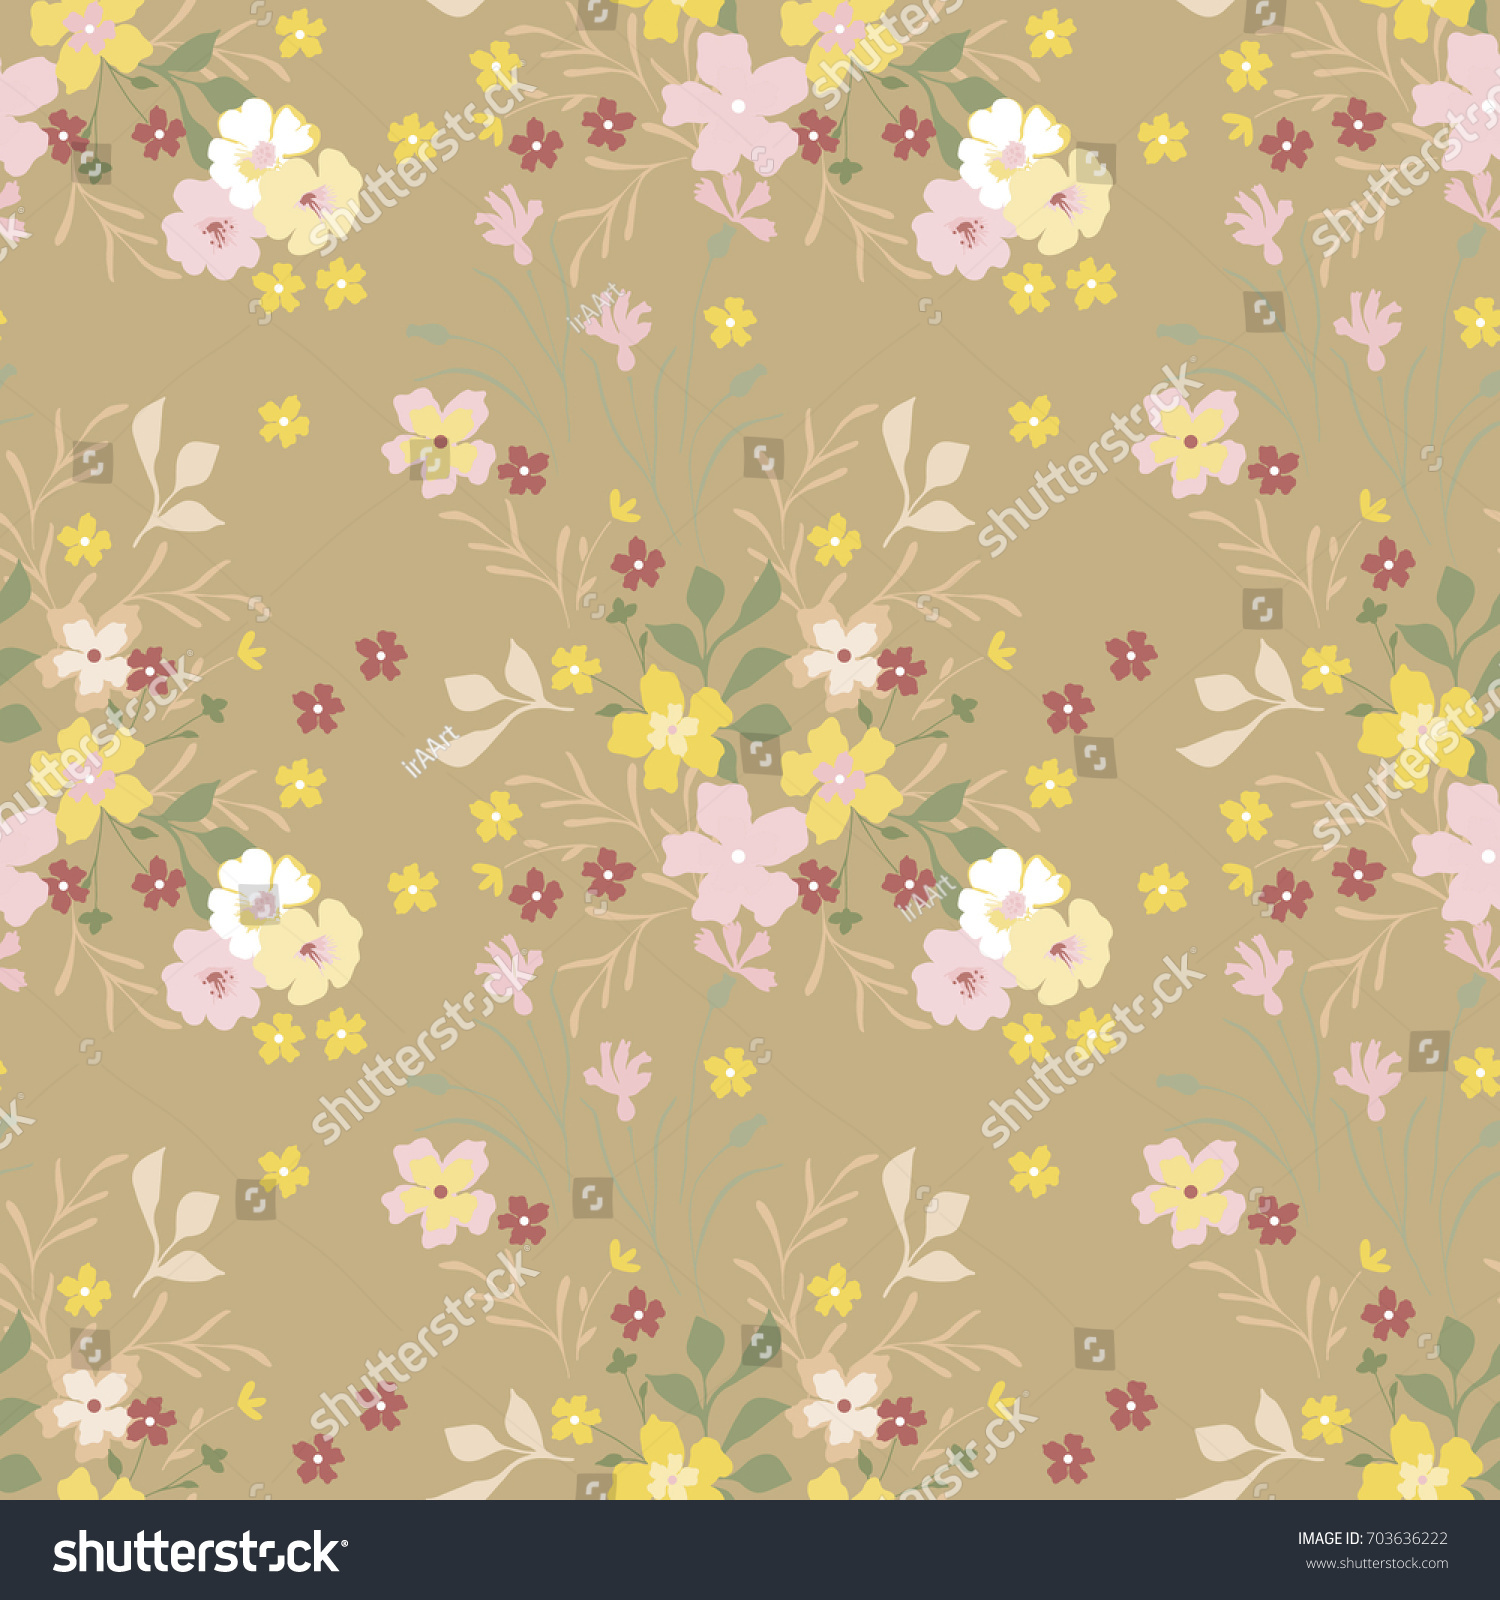 Vintage Floral Pattern Cute Small Flowers For Design Fabric Paper